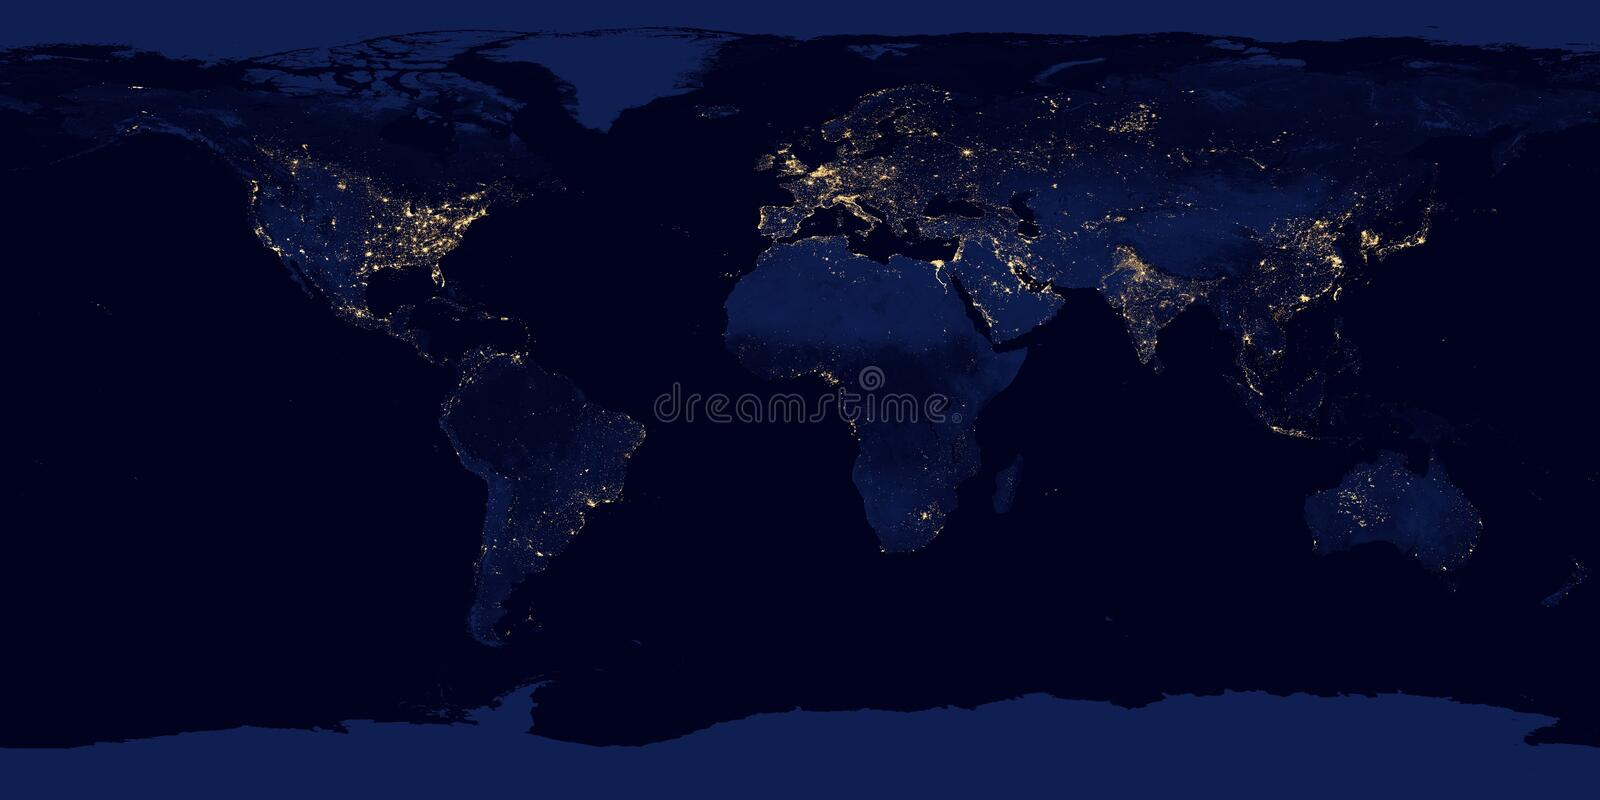 Earth, Sky, Atmosphere, Night royalty free stock images